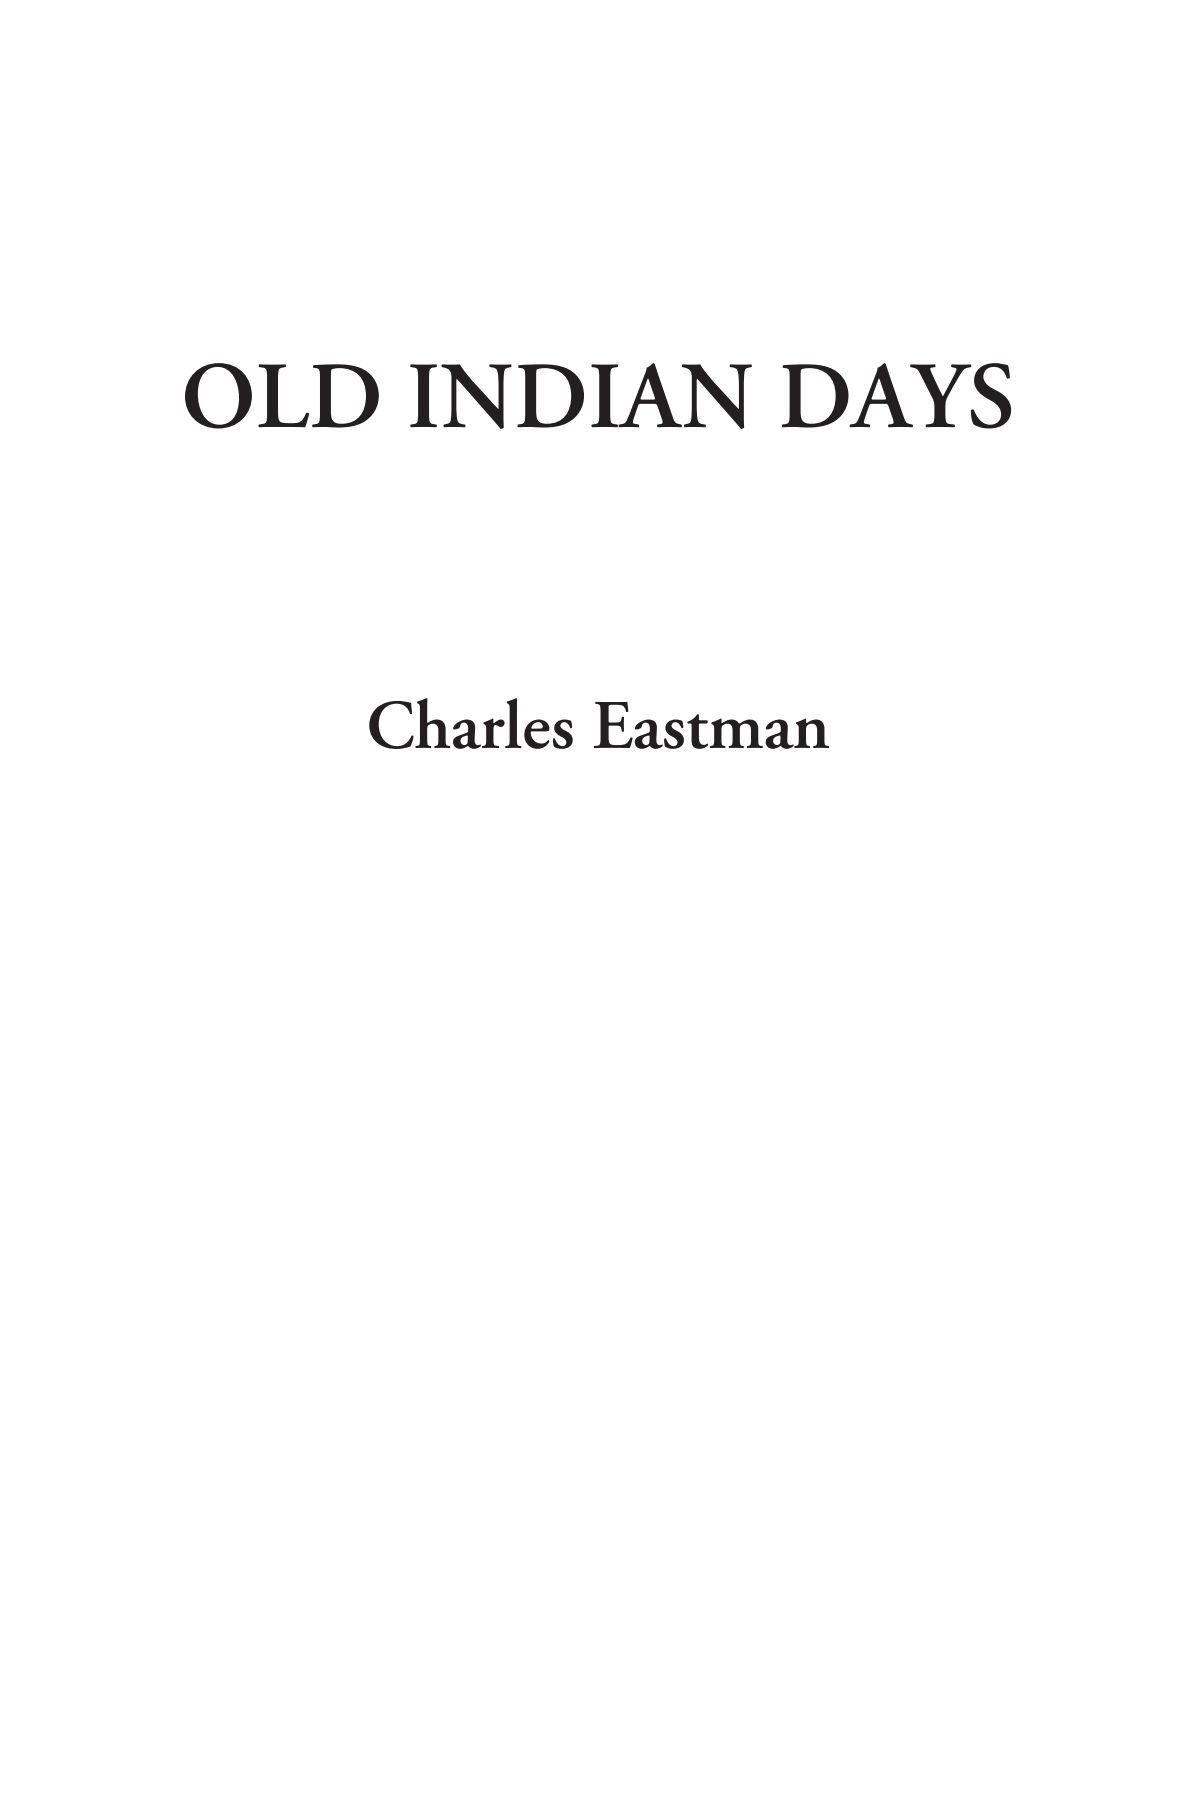 Read Online Old Indian Days pdf